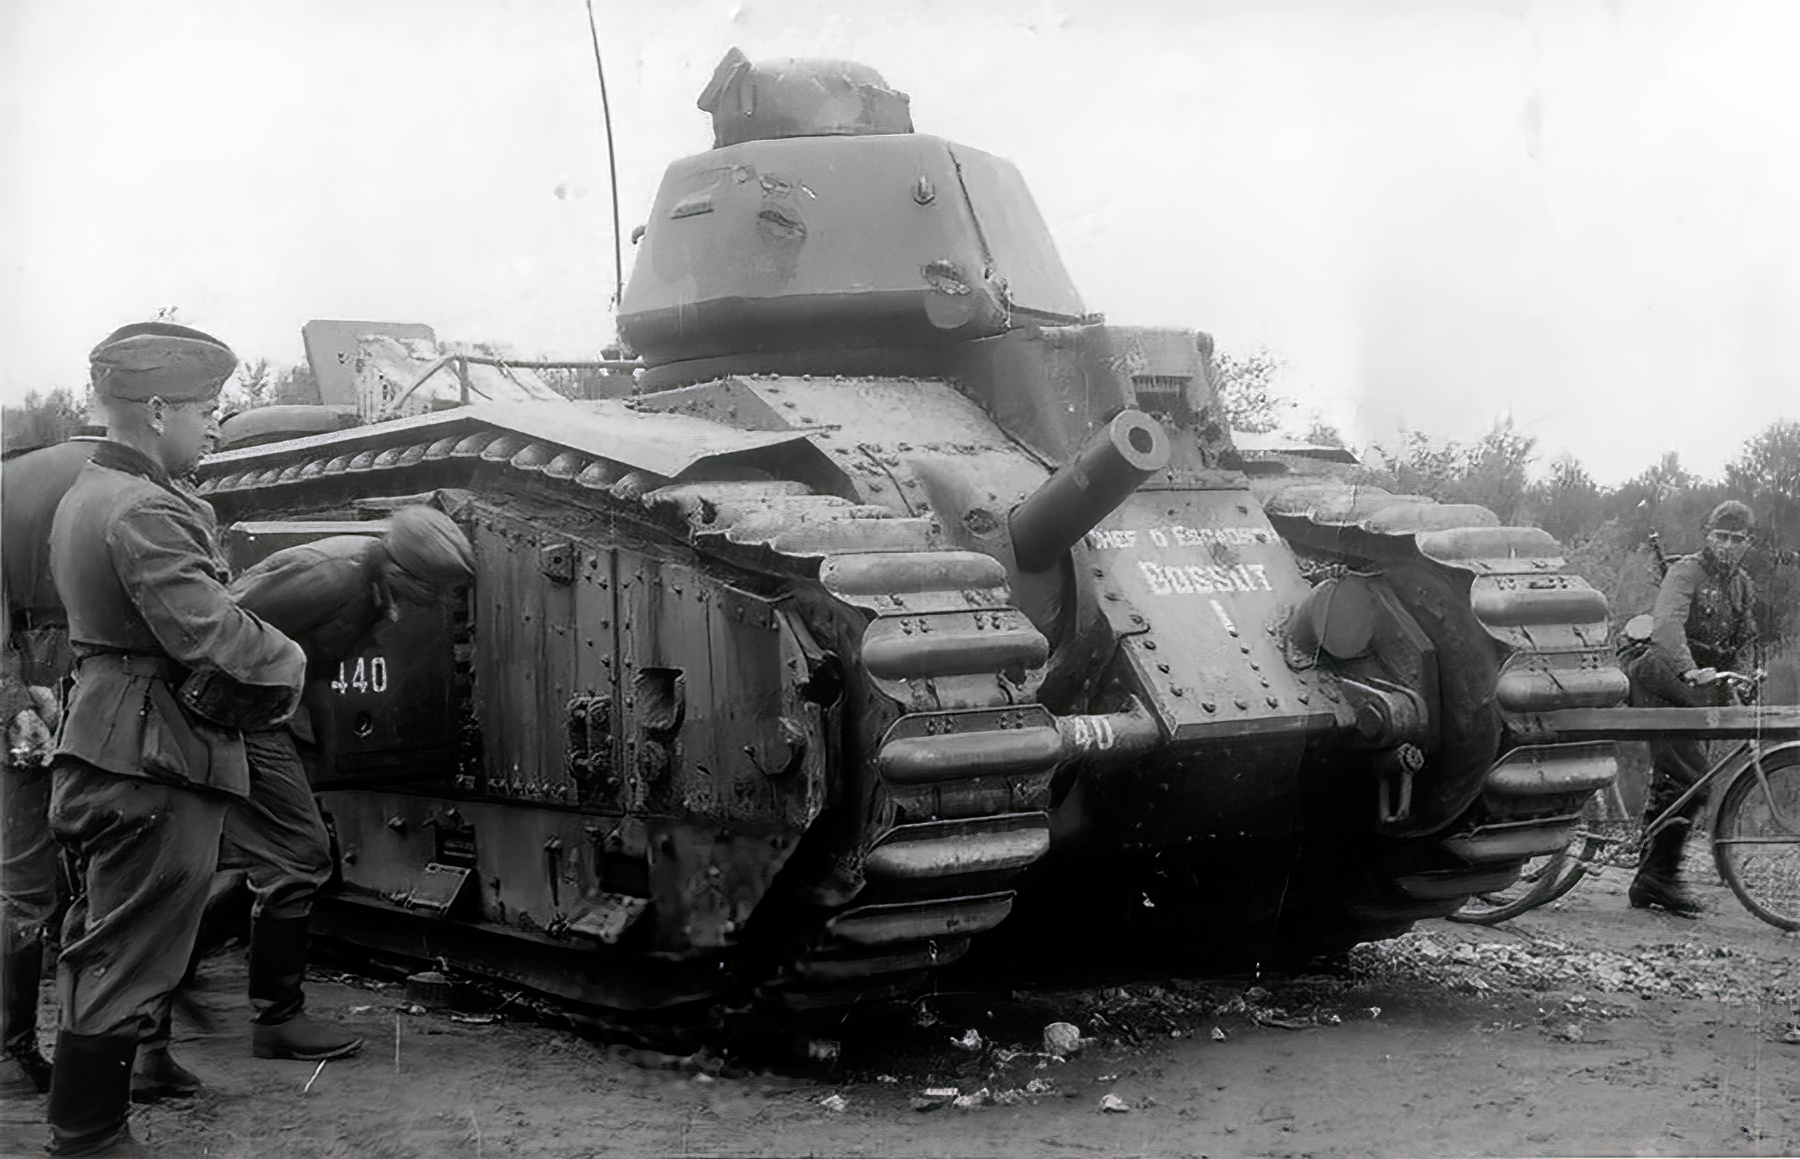 French Army Renault Char B1 named Bossut I 440 examined by German soldiers Battle of France 1940 01